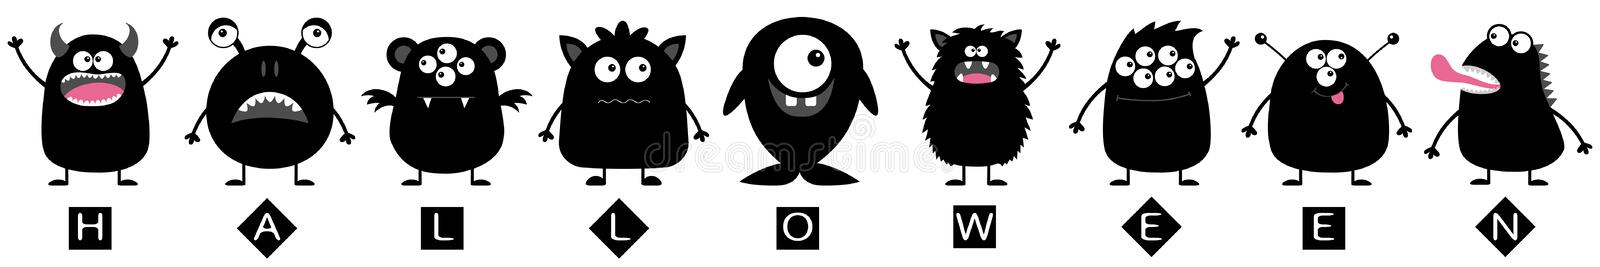 Happy Halloween line. Monster big set. Black silhouette. Cute cartoon colorful scary character. Eyes, tongue, hands up. Boo spooky. Funny baby collection royalty free illustration